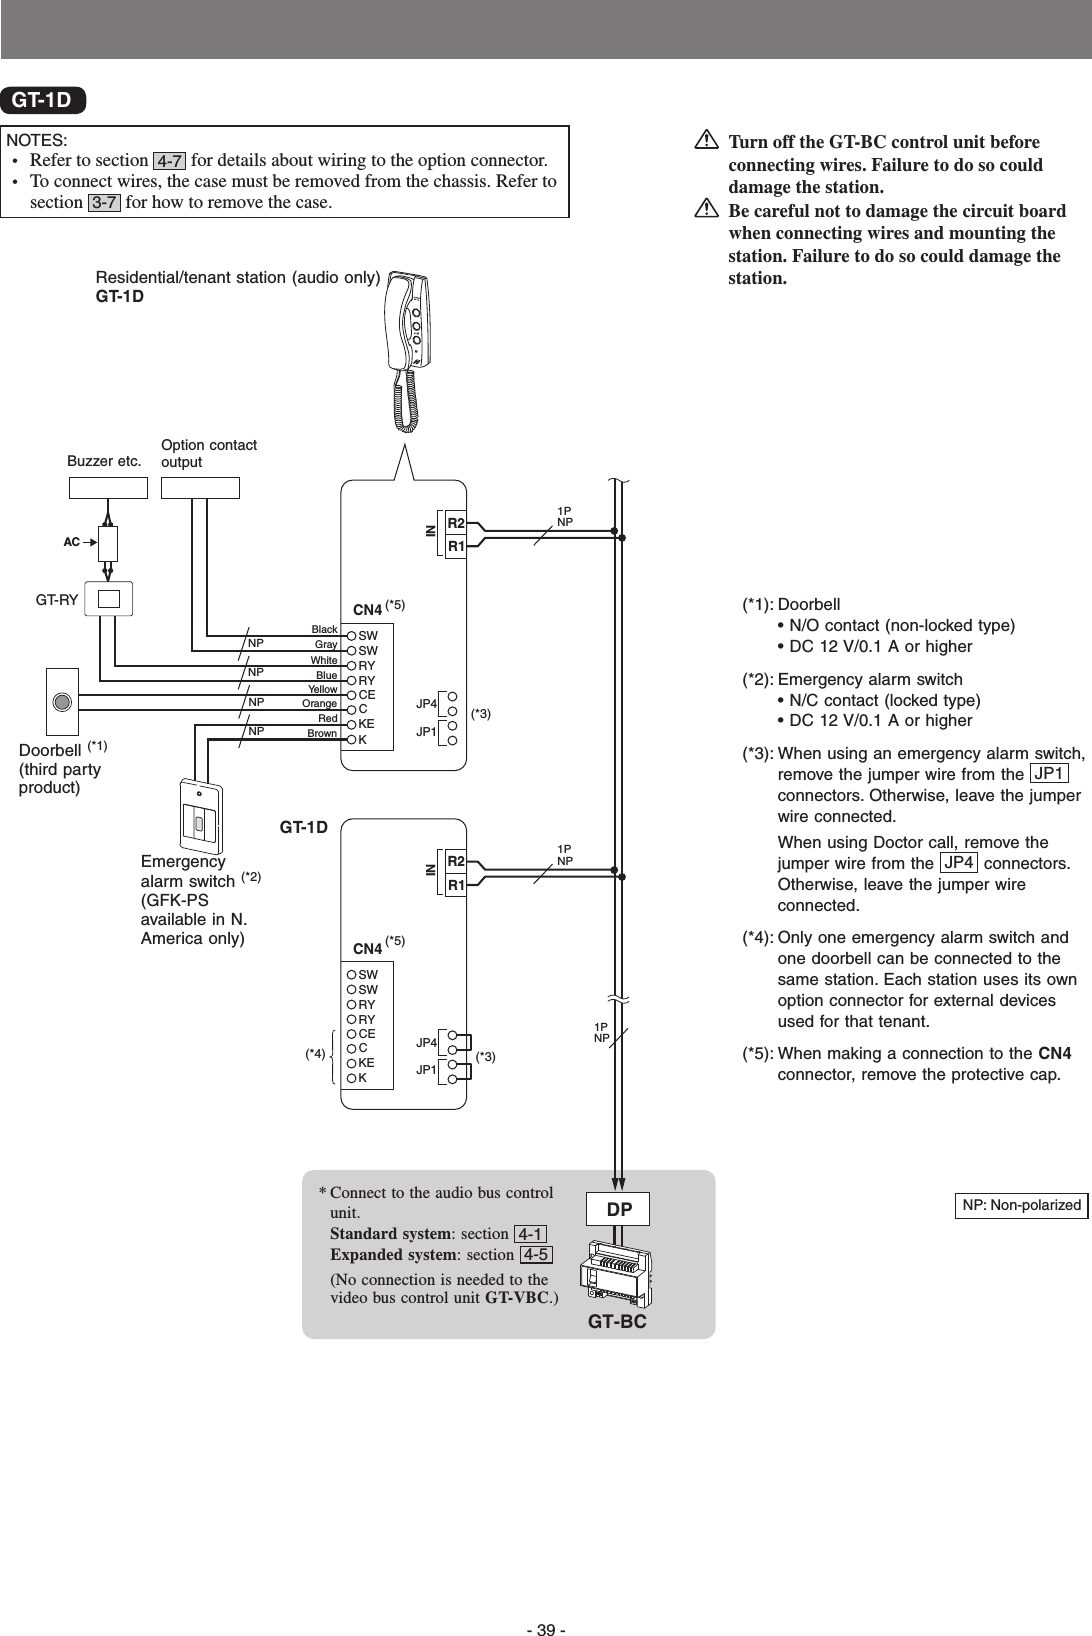 Electric Motors Wiring Diagram On 2 Hp Baldor Motor Wiring Diagram